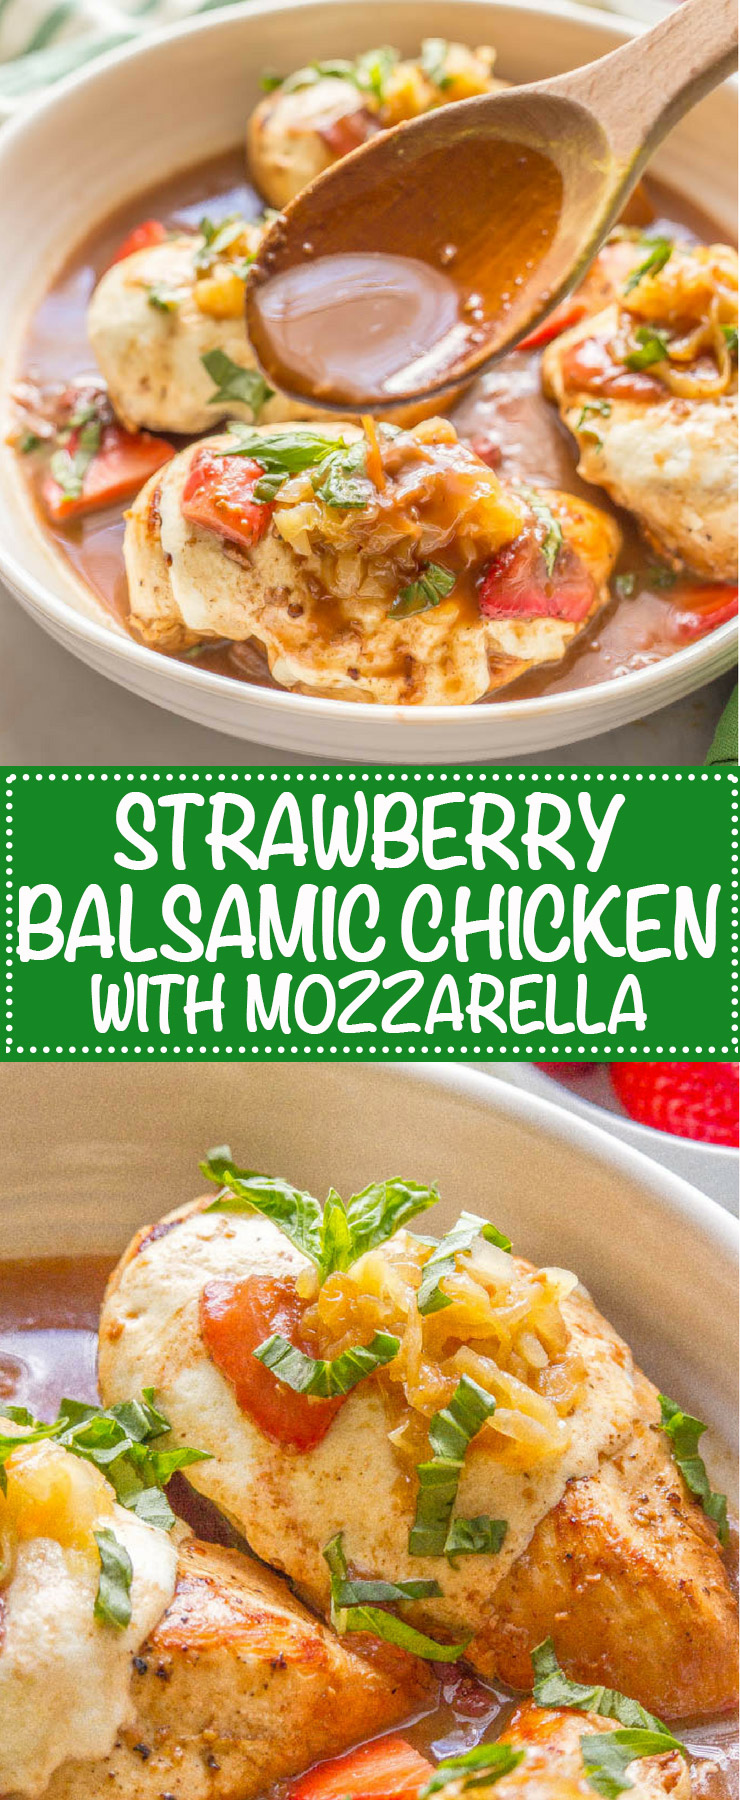 This easy strawberry balsamic chicken with mozzarella is a delicious and fresh dinner recipe with sweet strawberries, juicy chicken and melty mozzarella cheese. #easychickenrecipes #easychickendinner #cheesychicken | www.familyfoodonthetable.com